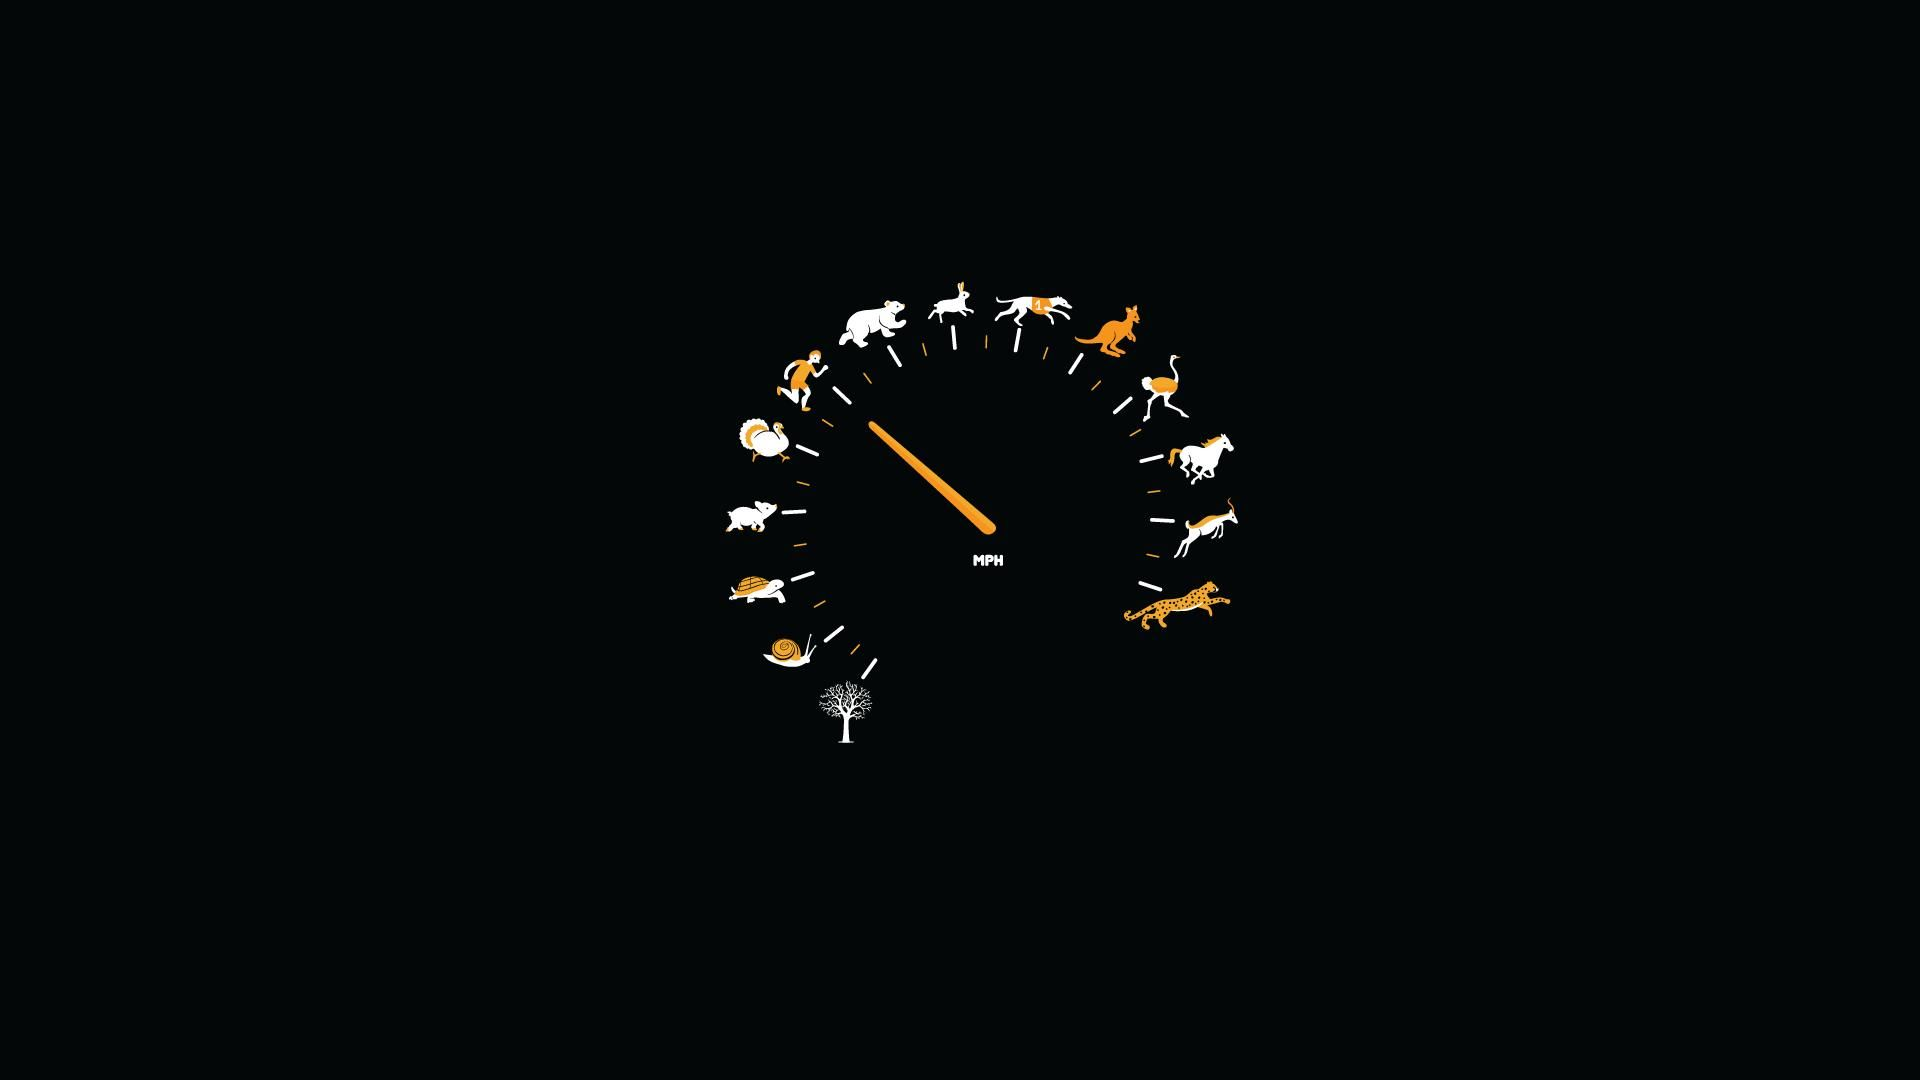 Animals Black Background Funny Gauge Speedometer Wallpaper 1094495 Wallbase Cc Minimalist Wallpaper Funny Wallpaper Minimal Wallpaper